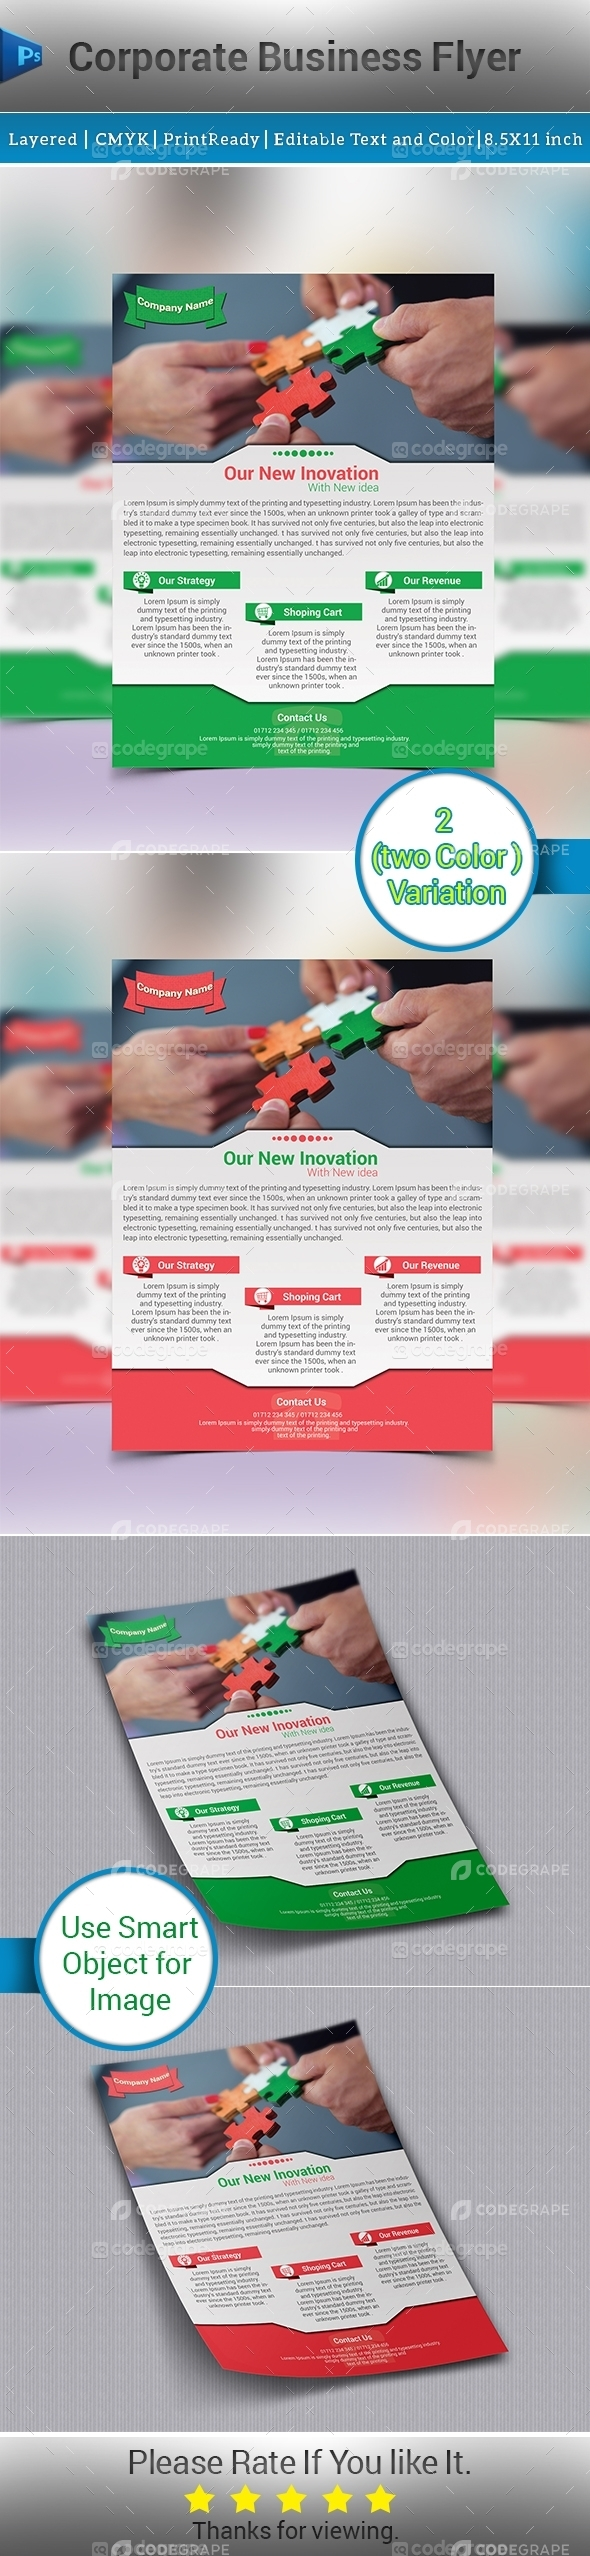 Corporate Business Flyer (2 Colors)